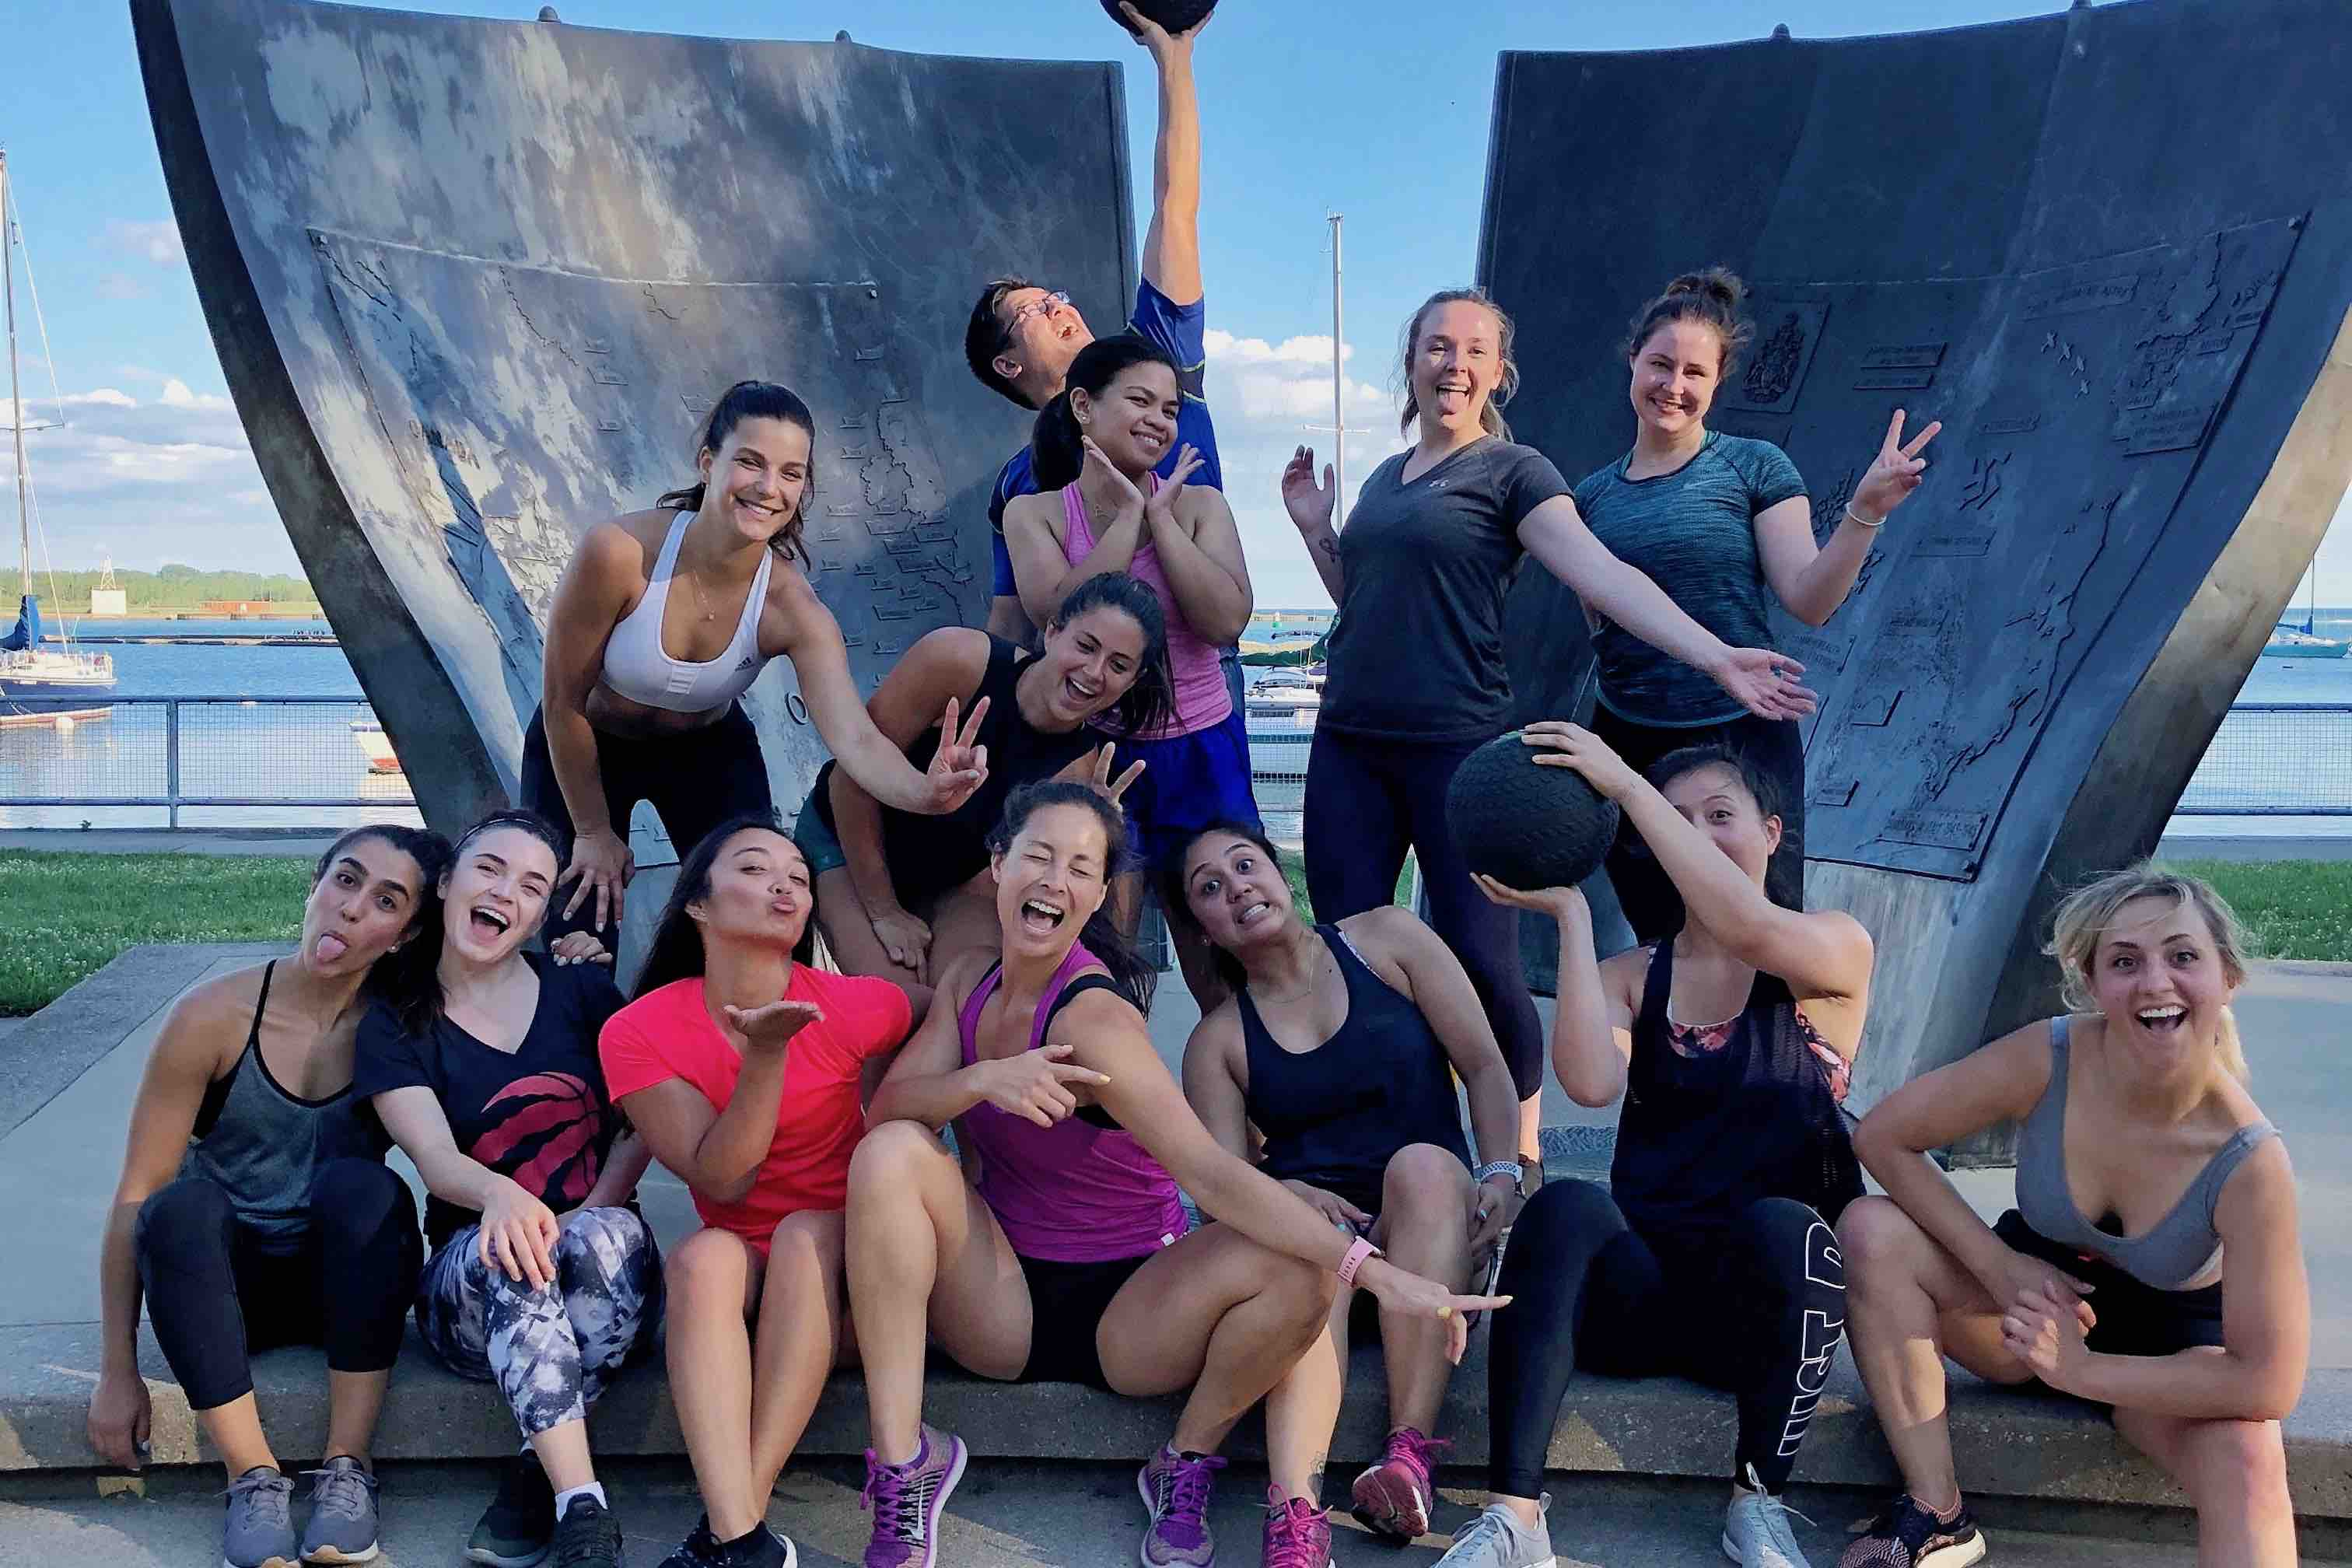 a group of people posing after a workout